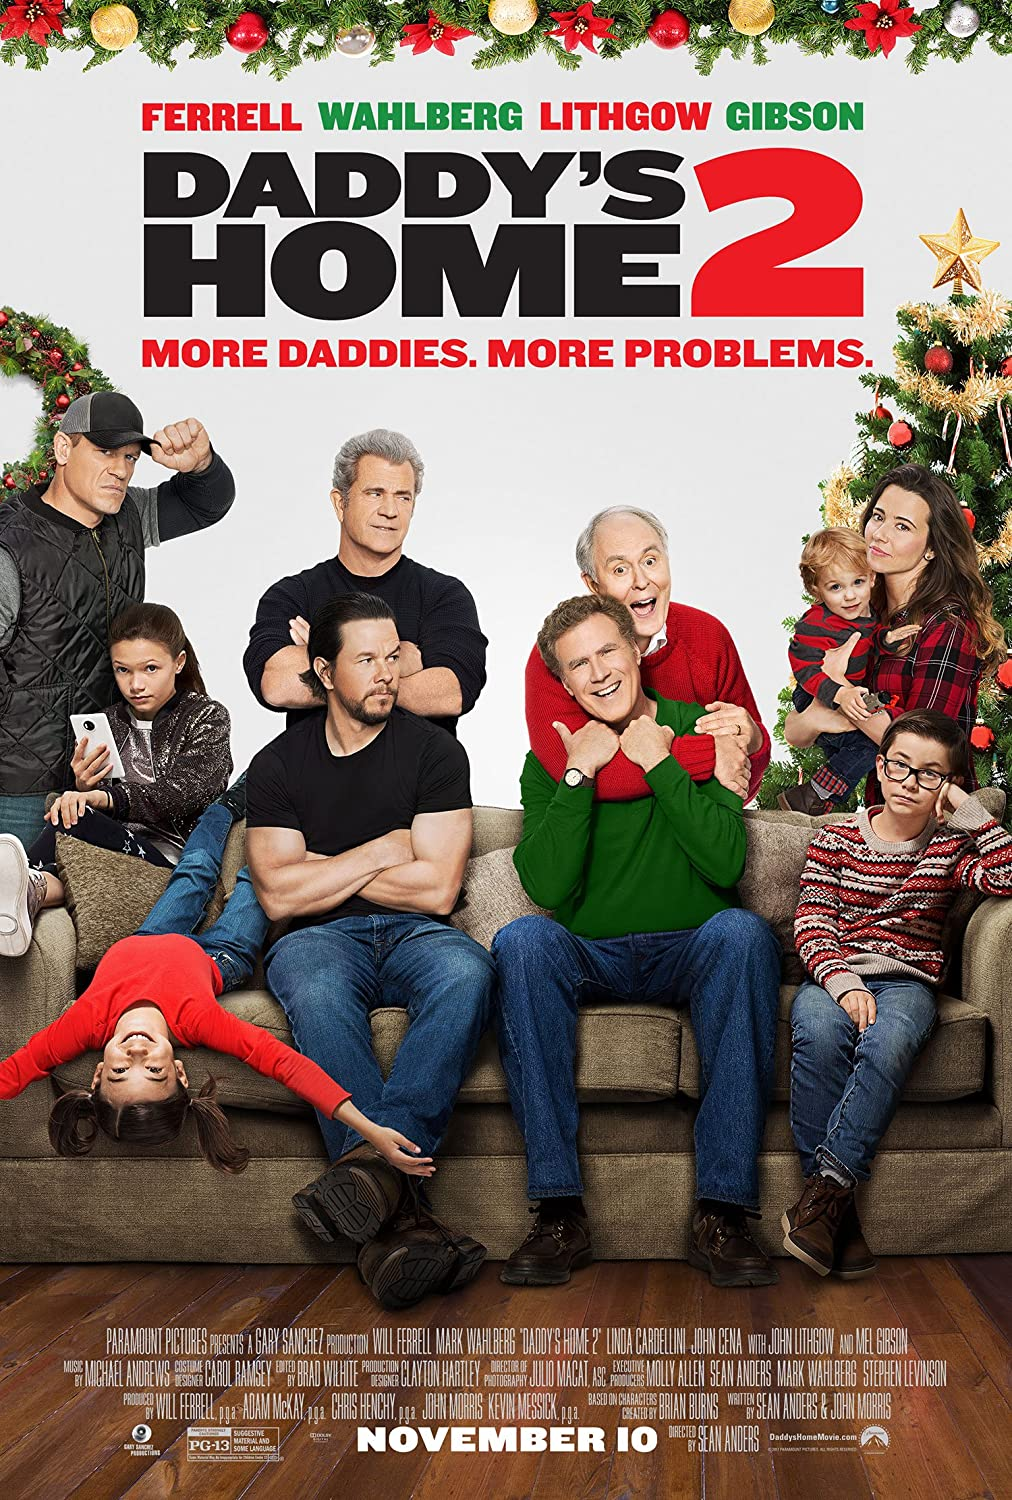 Amazon.com : Daddy's Home 2 Movie Poster Limited Print Photo Will ...